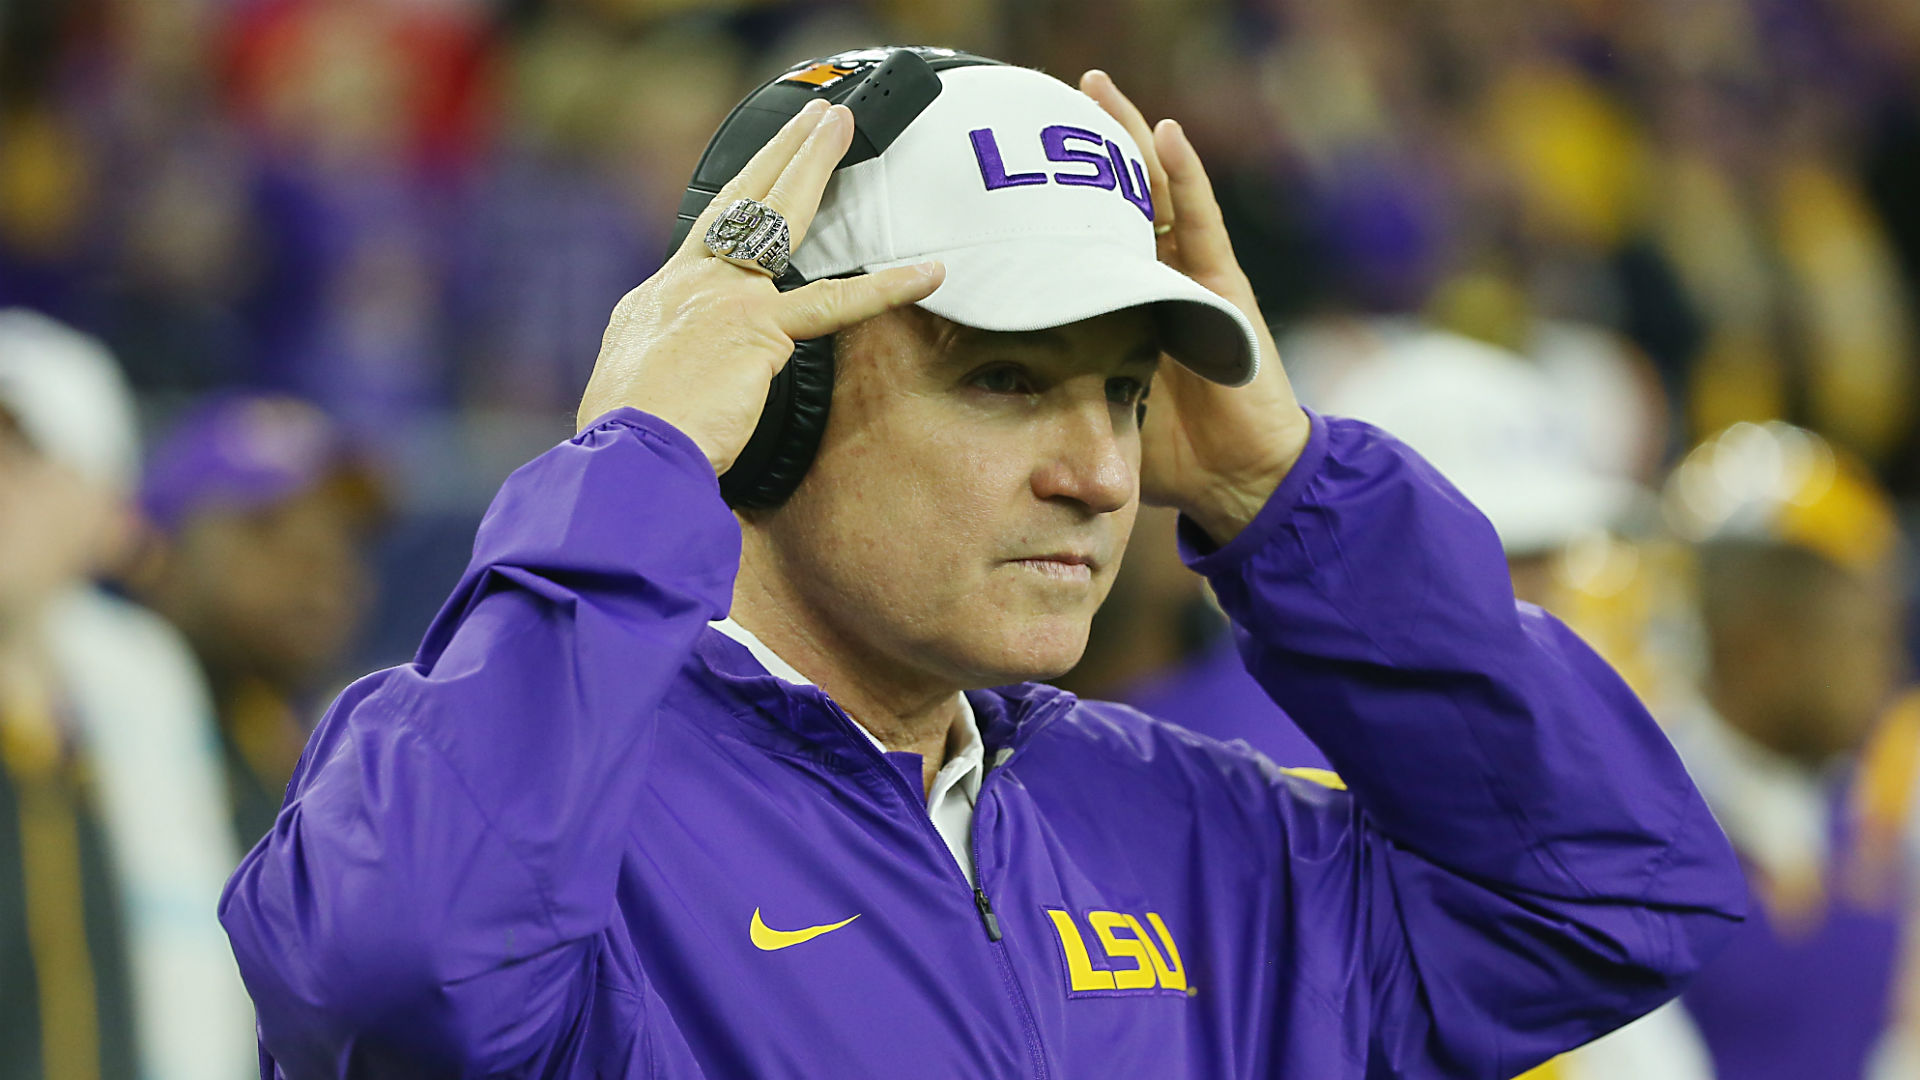 Brandon Harris Benched, but LSU Tigers Get First Win of 2016